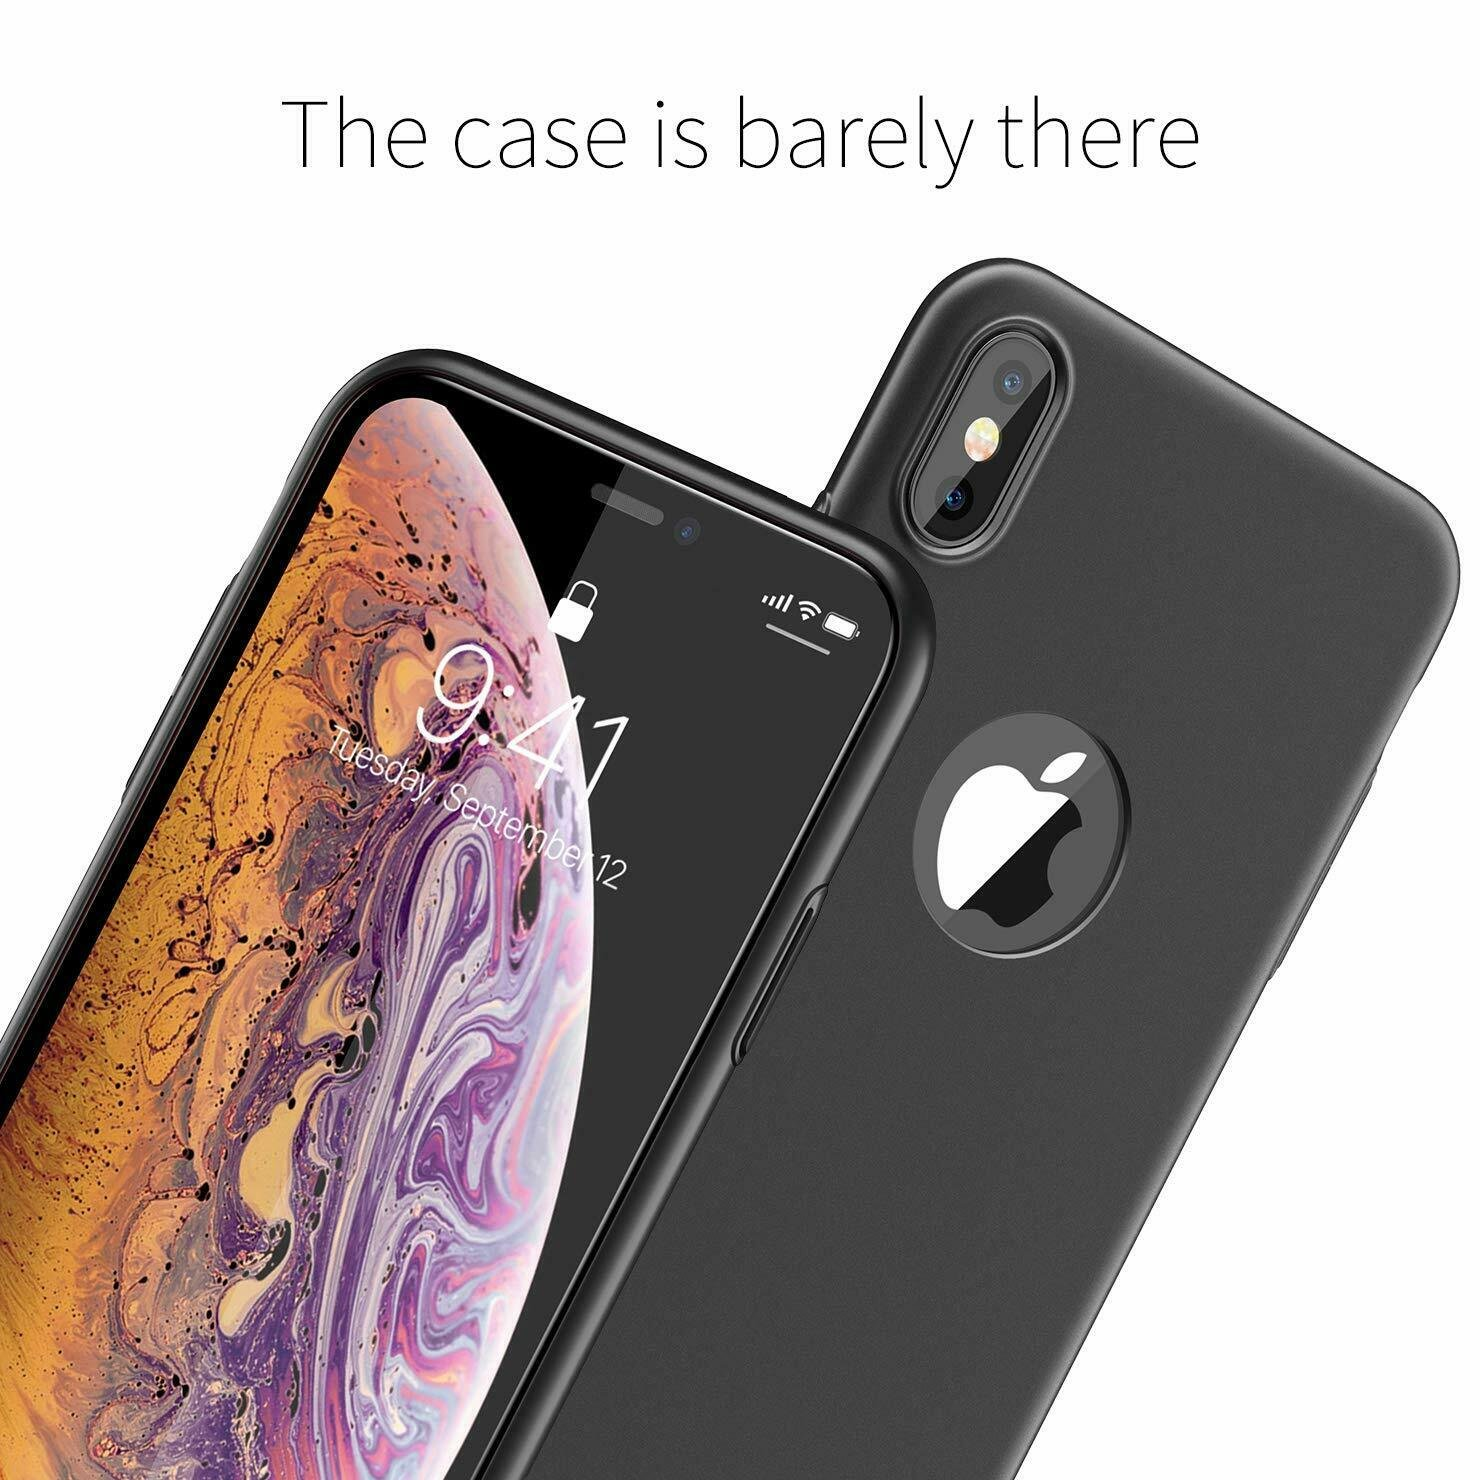 Case-Thin-Hard-Cover-Tempered-Glass-Screen-Protector-For-iPhone-X-XR-XS-Max thumbnail 12